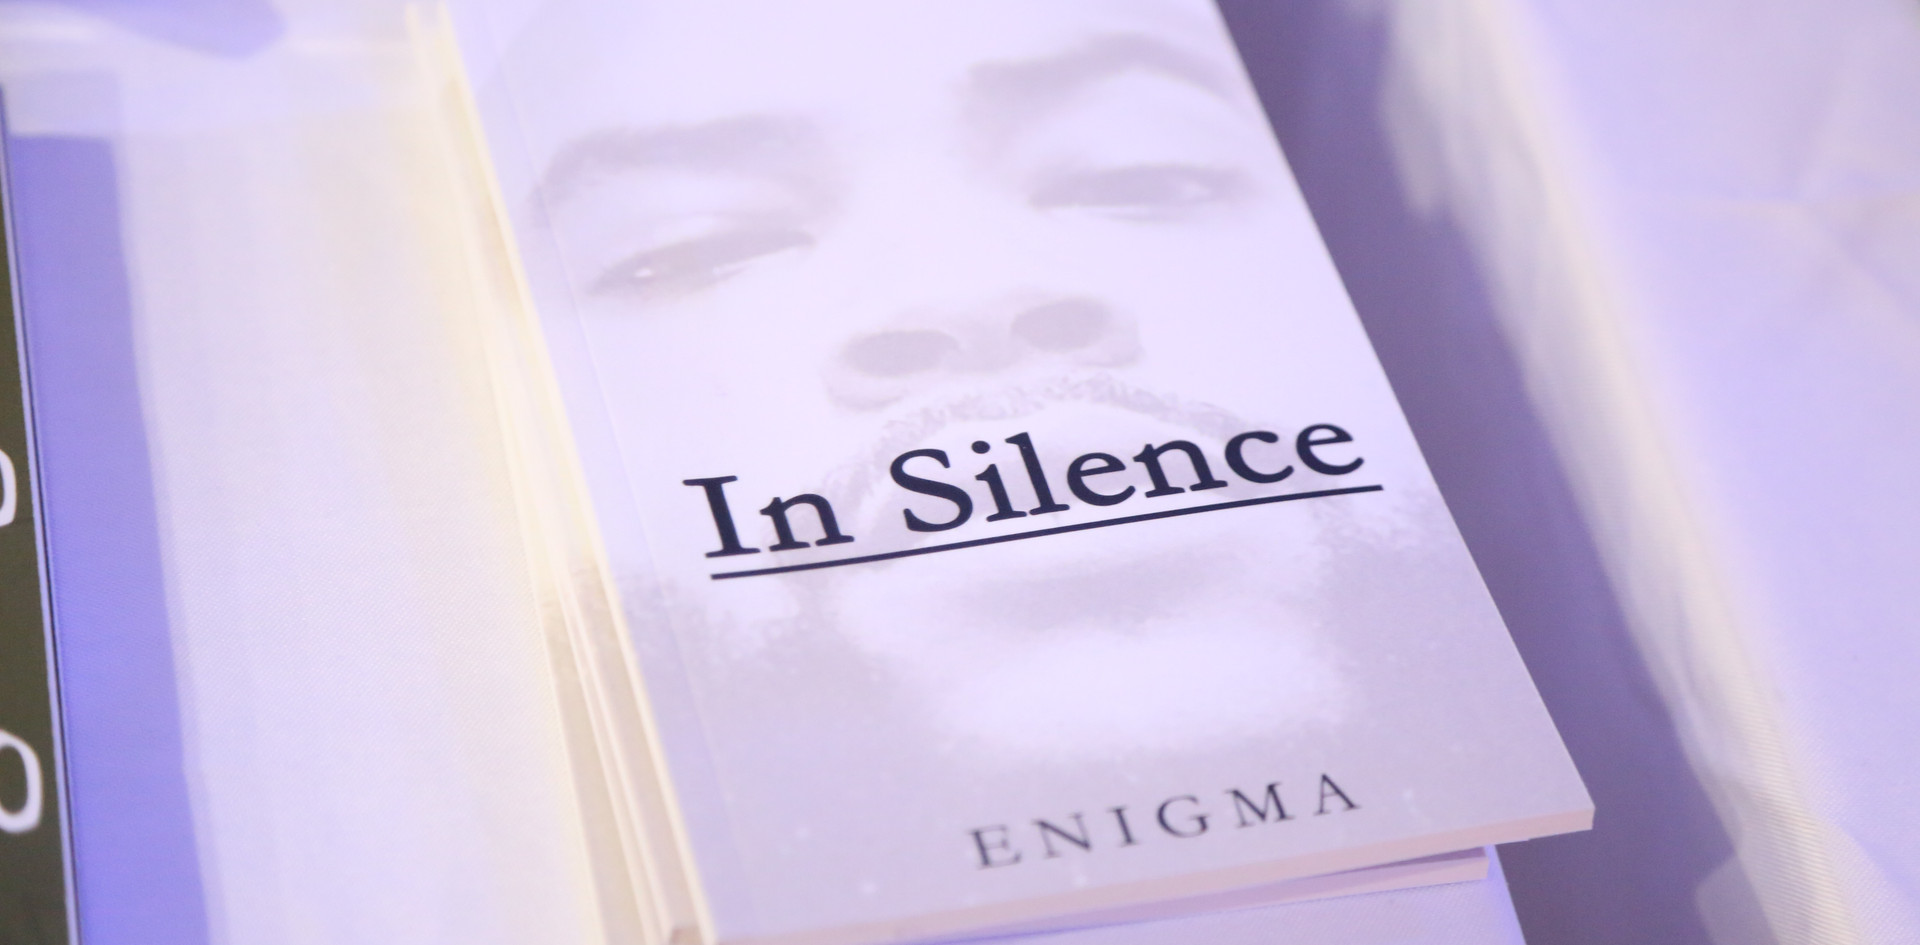 """In Silence"" by Enigma"